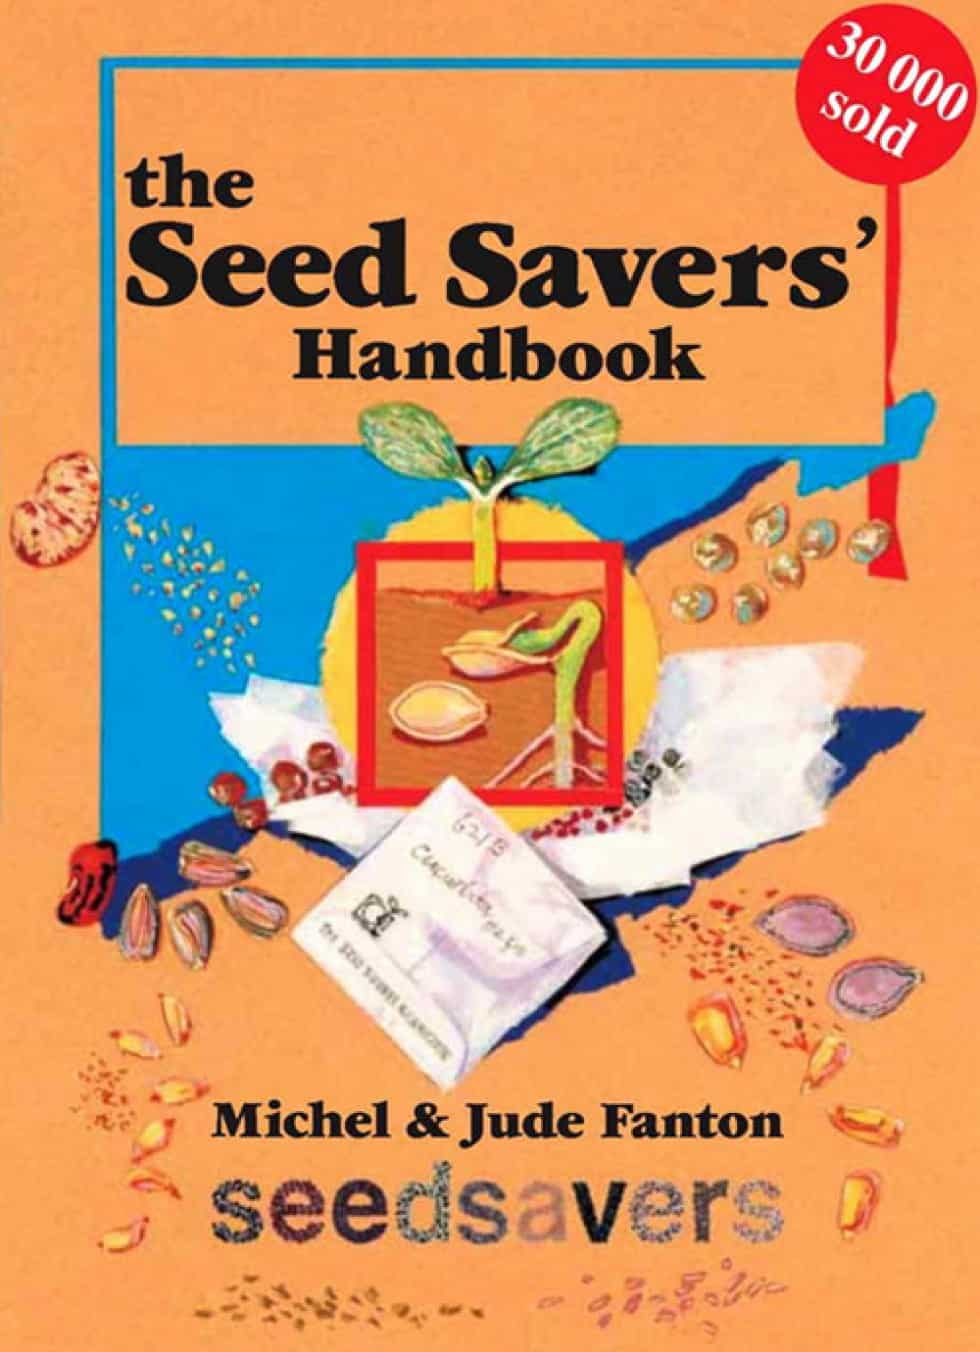 The Seed Savers' handbook